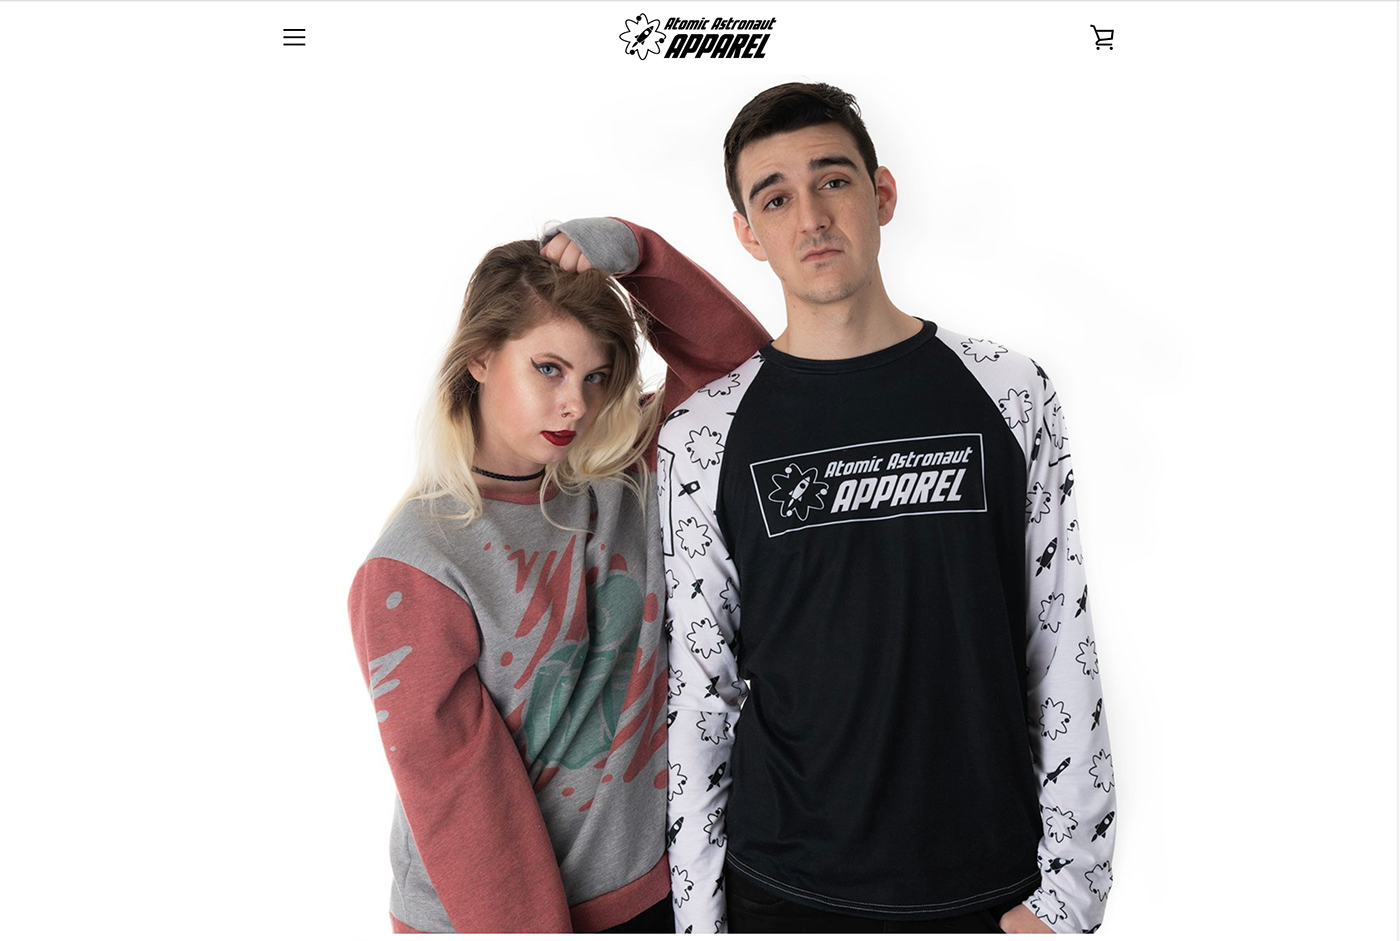 apparel campaign social media Atomic Astronaut streetwear clothes Web Design  Storefront photoshoot